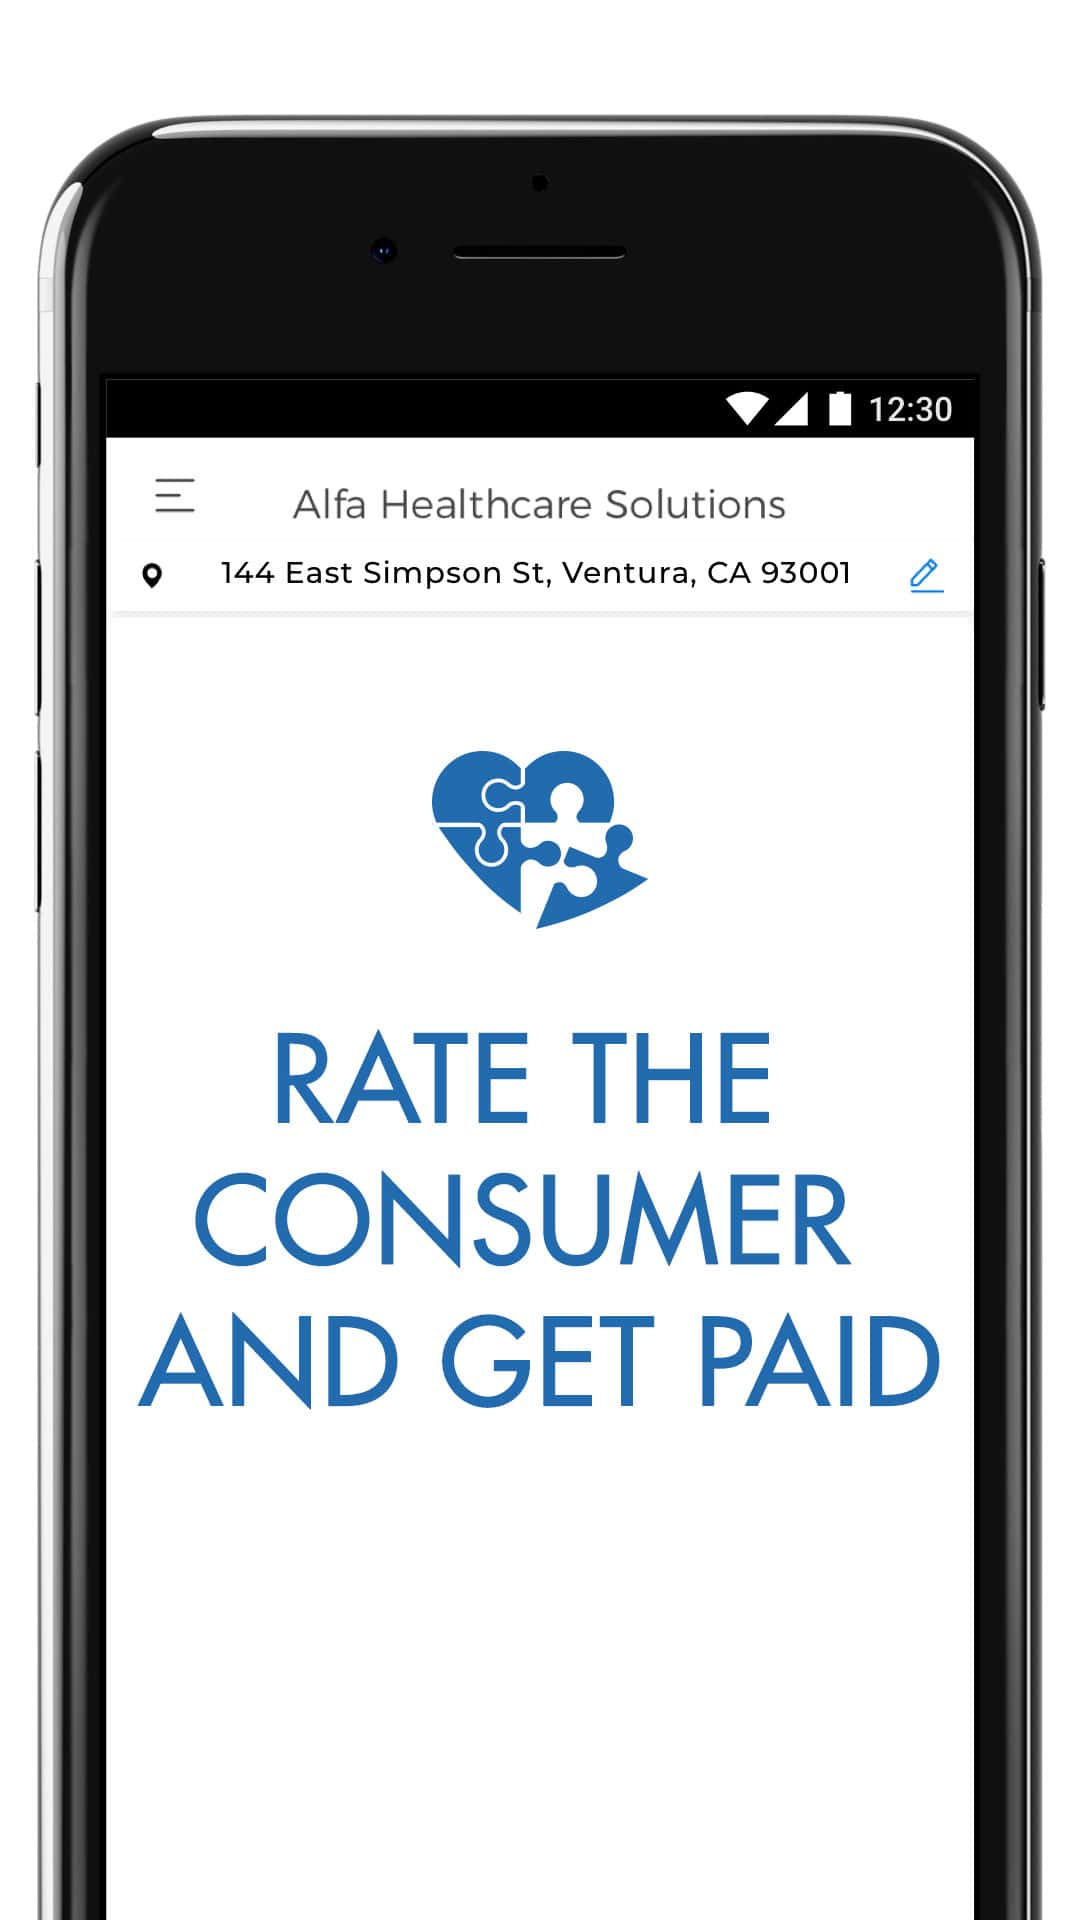 Rate the consumer and get paid